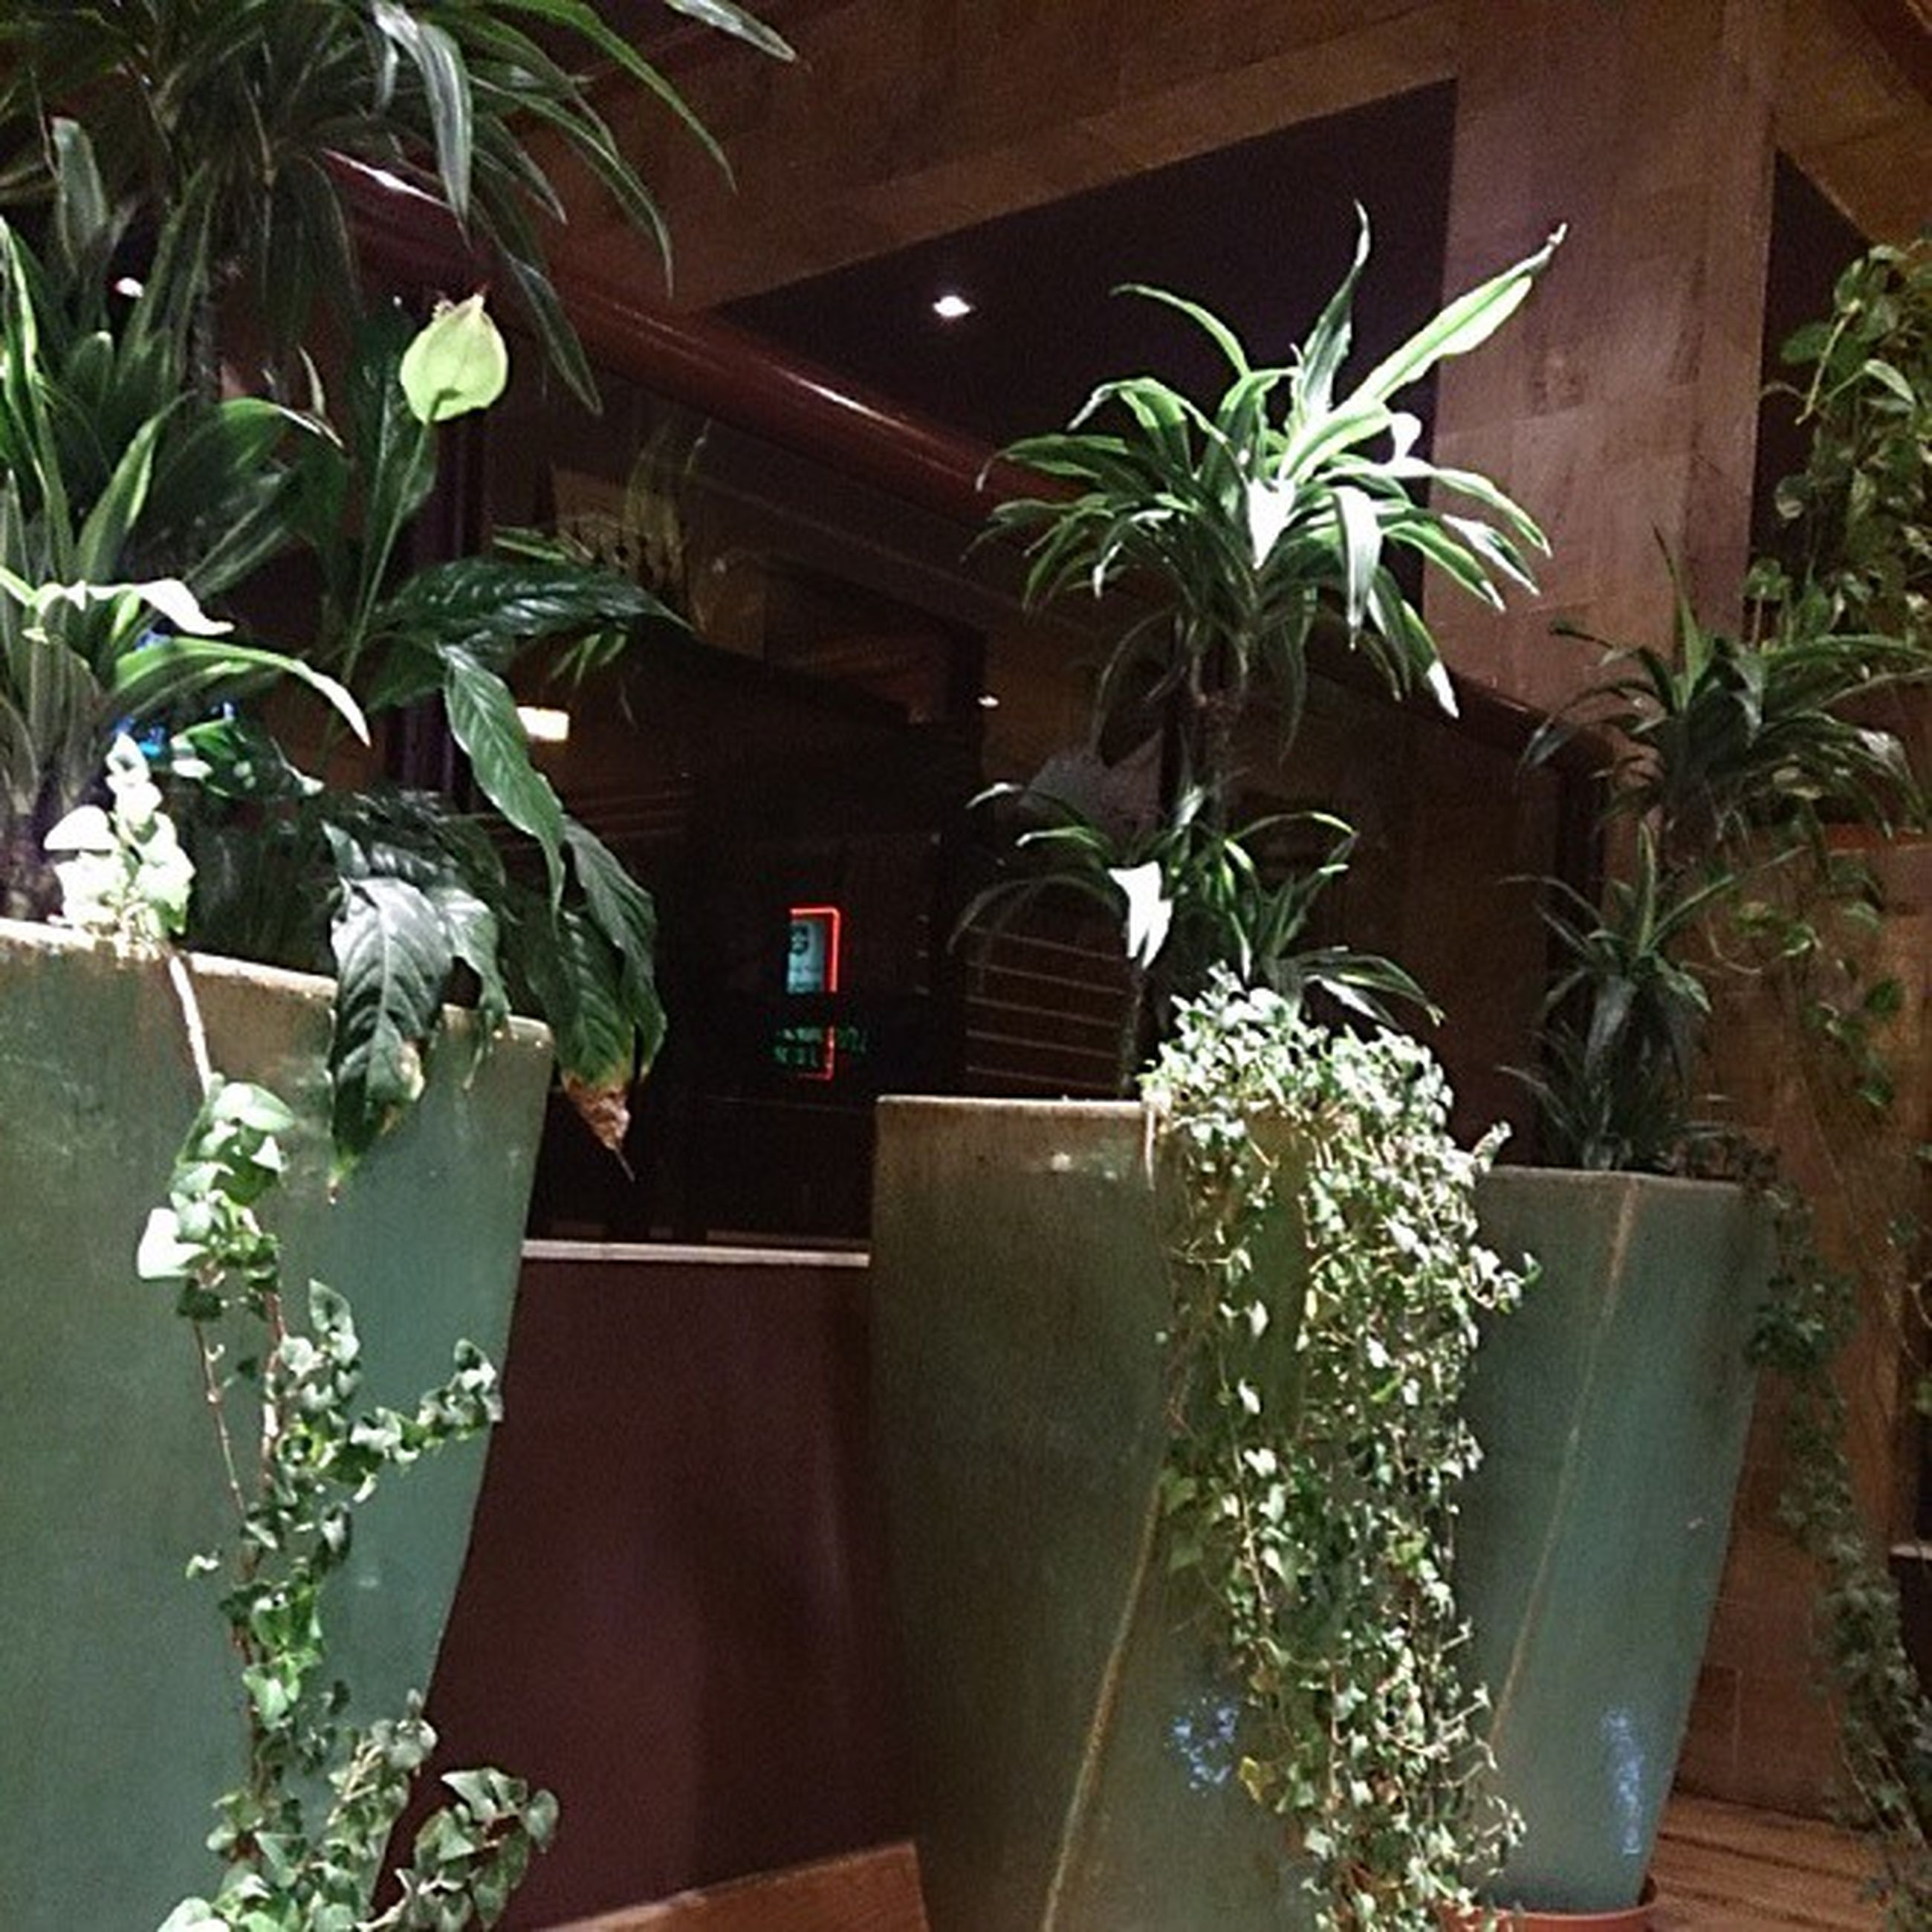 potted plant, indoors, plant, table, home interior, growth, house, vase, no people, flower, sunlight, decoration, wood - material, built structure, flower pot, front or back yard, wall - building feature, architecture, chair, leaf